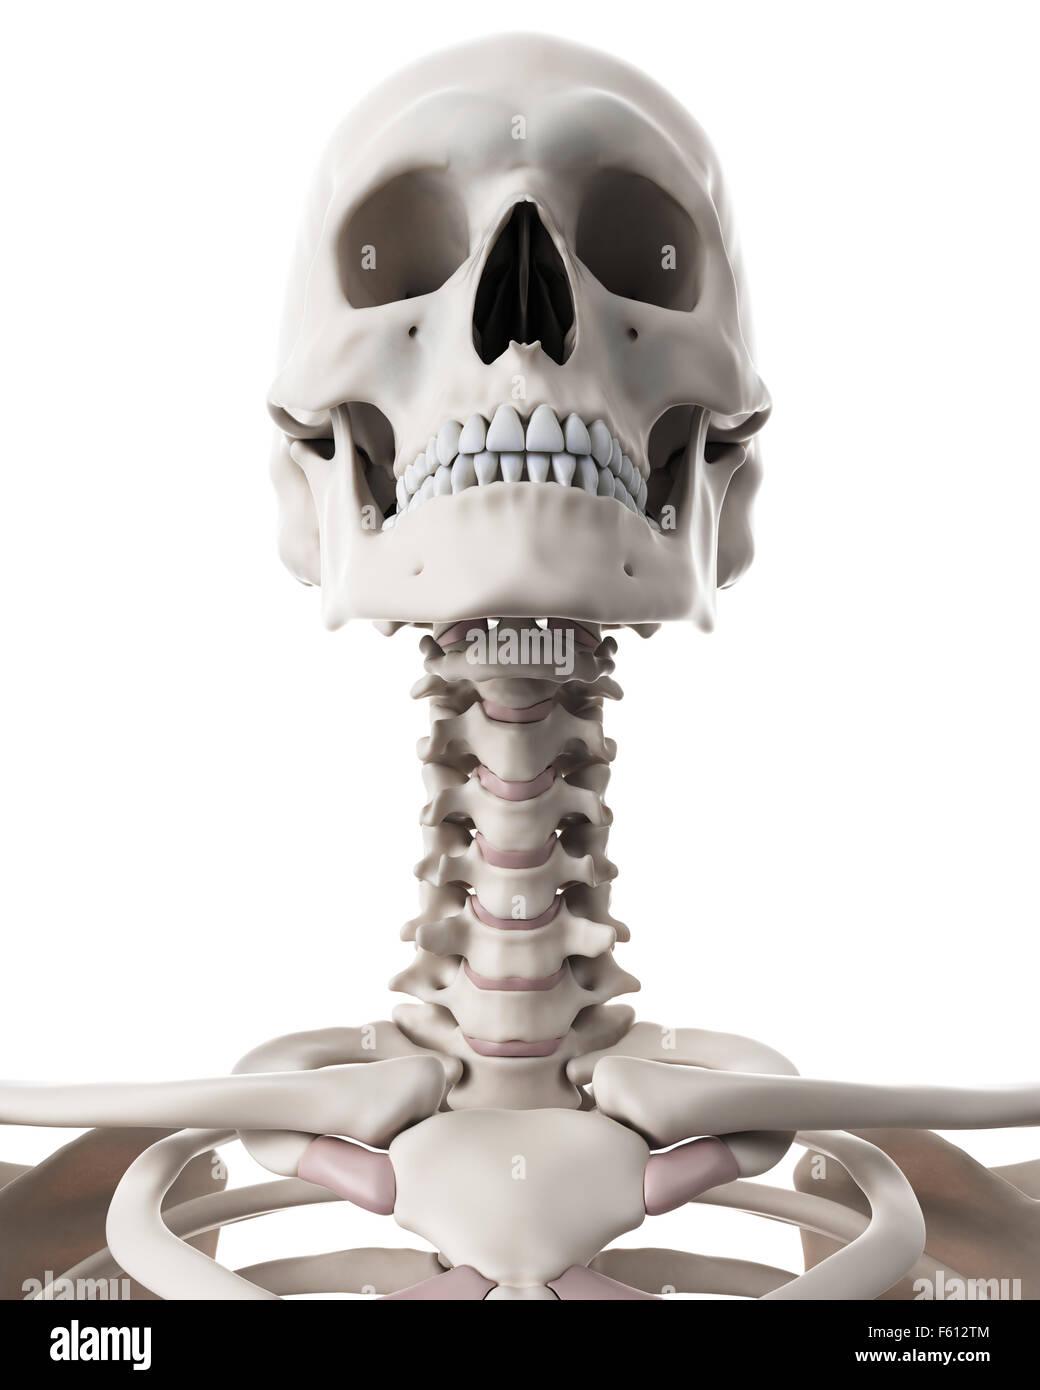 Skull Cervical Spine Artwork Stock Photos Skull Cervical Spine